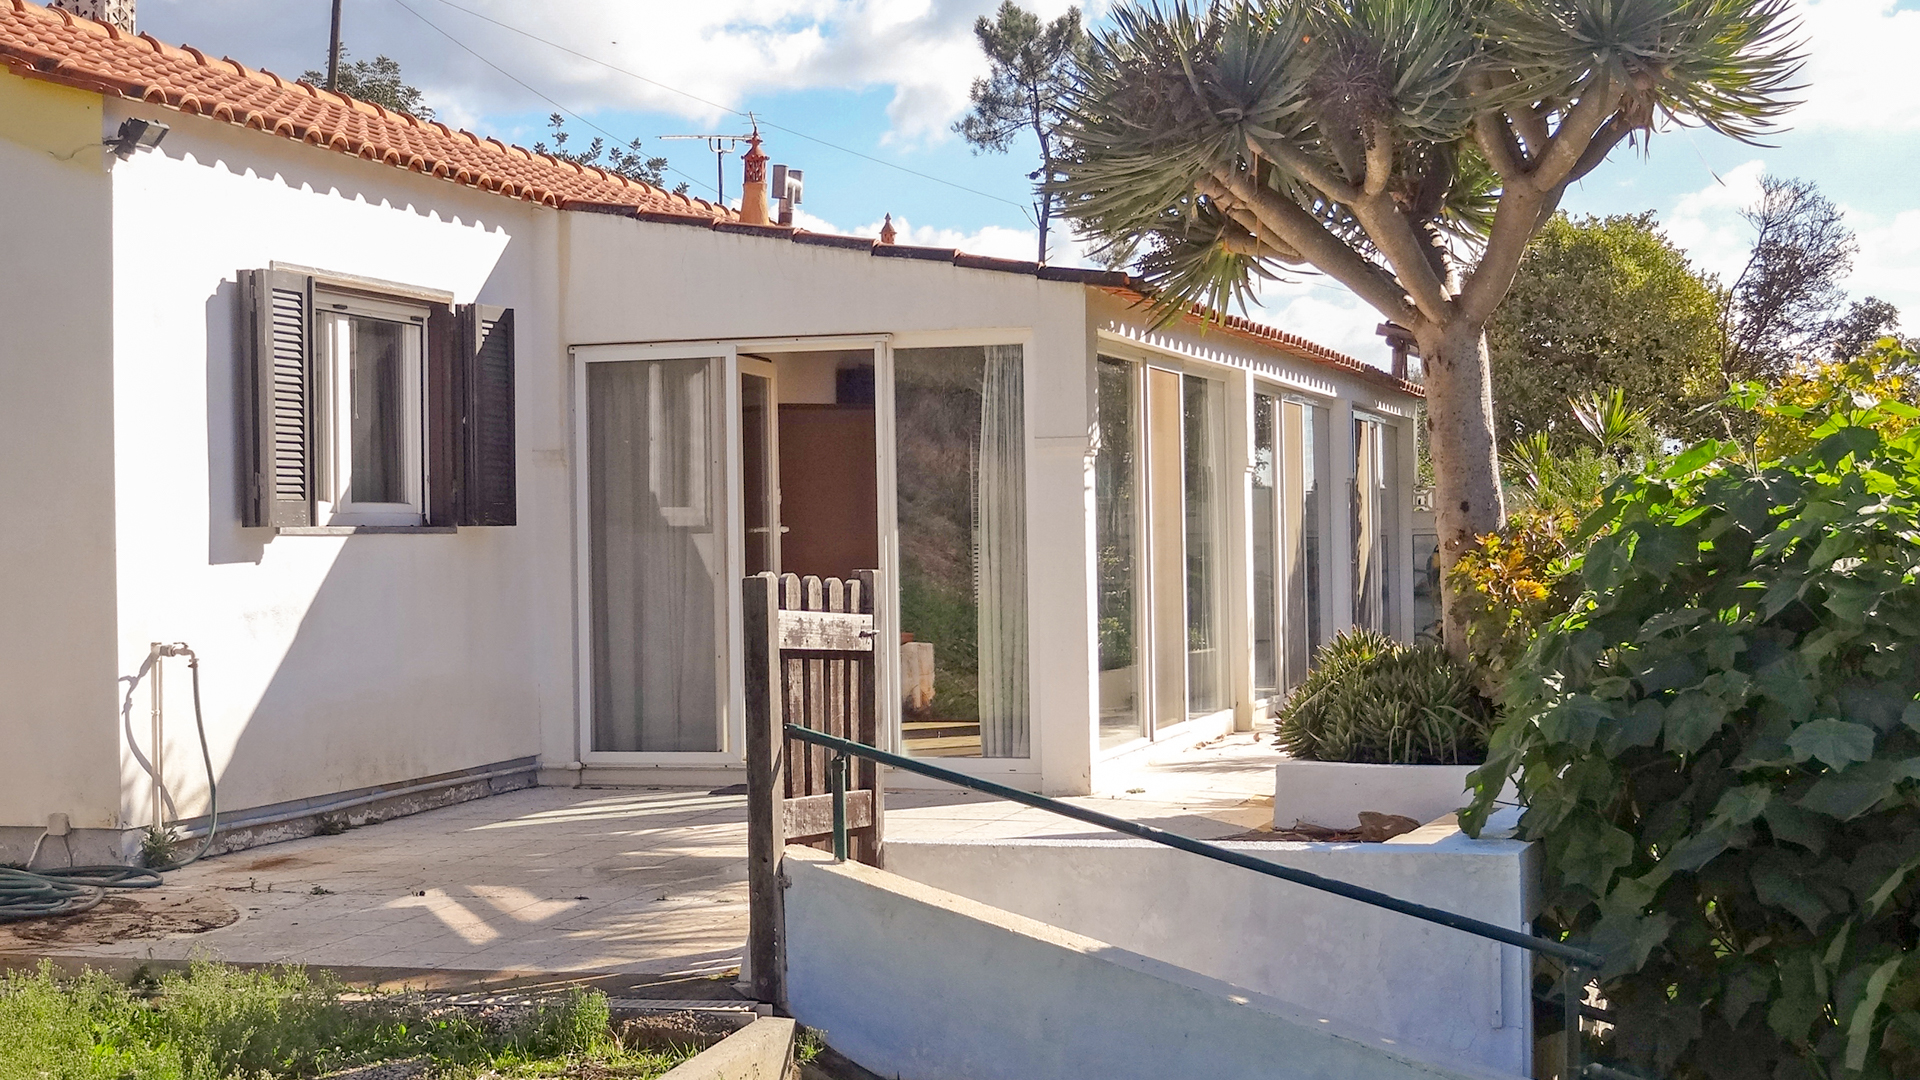 cosy 2 bedroom country cottage near to towns of monchique and portimão, west algarve